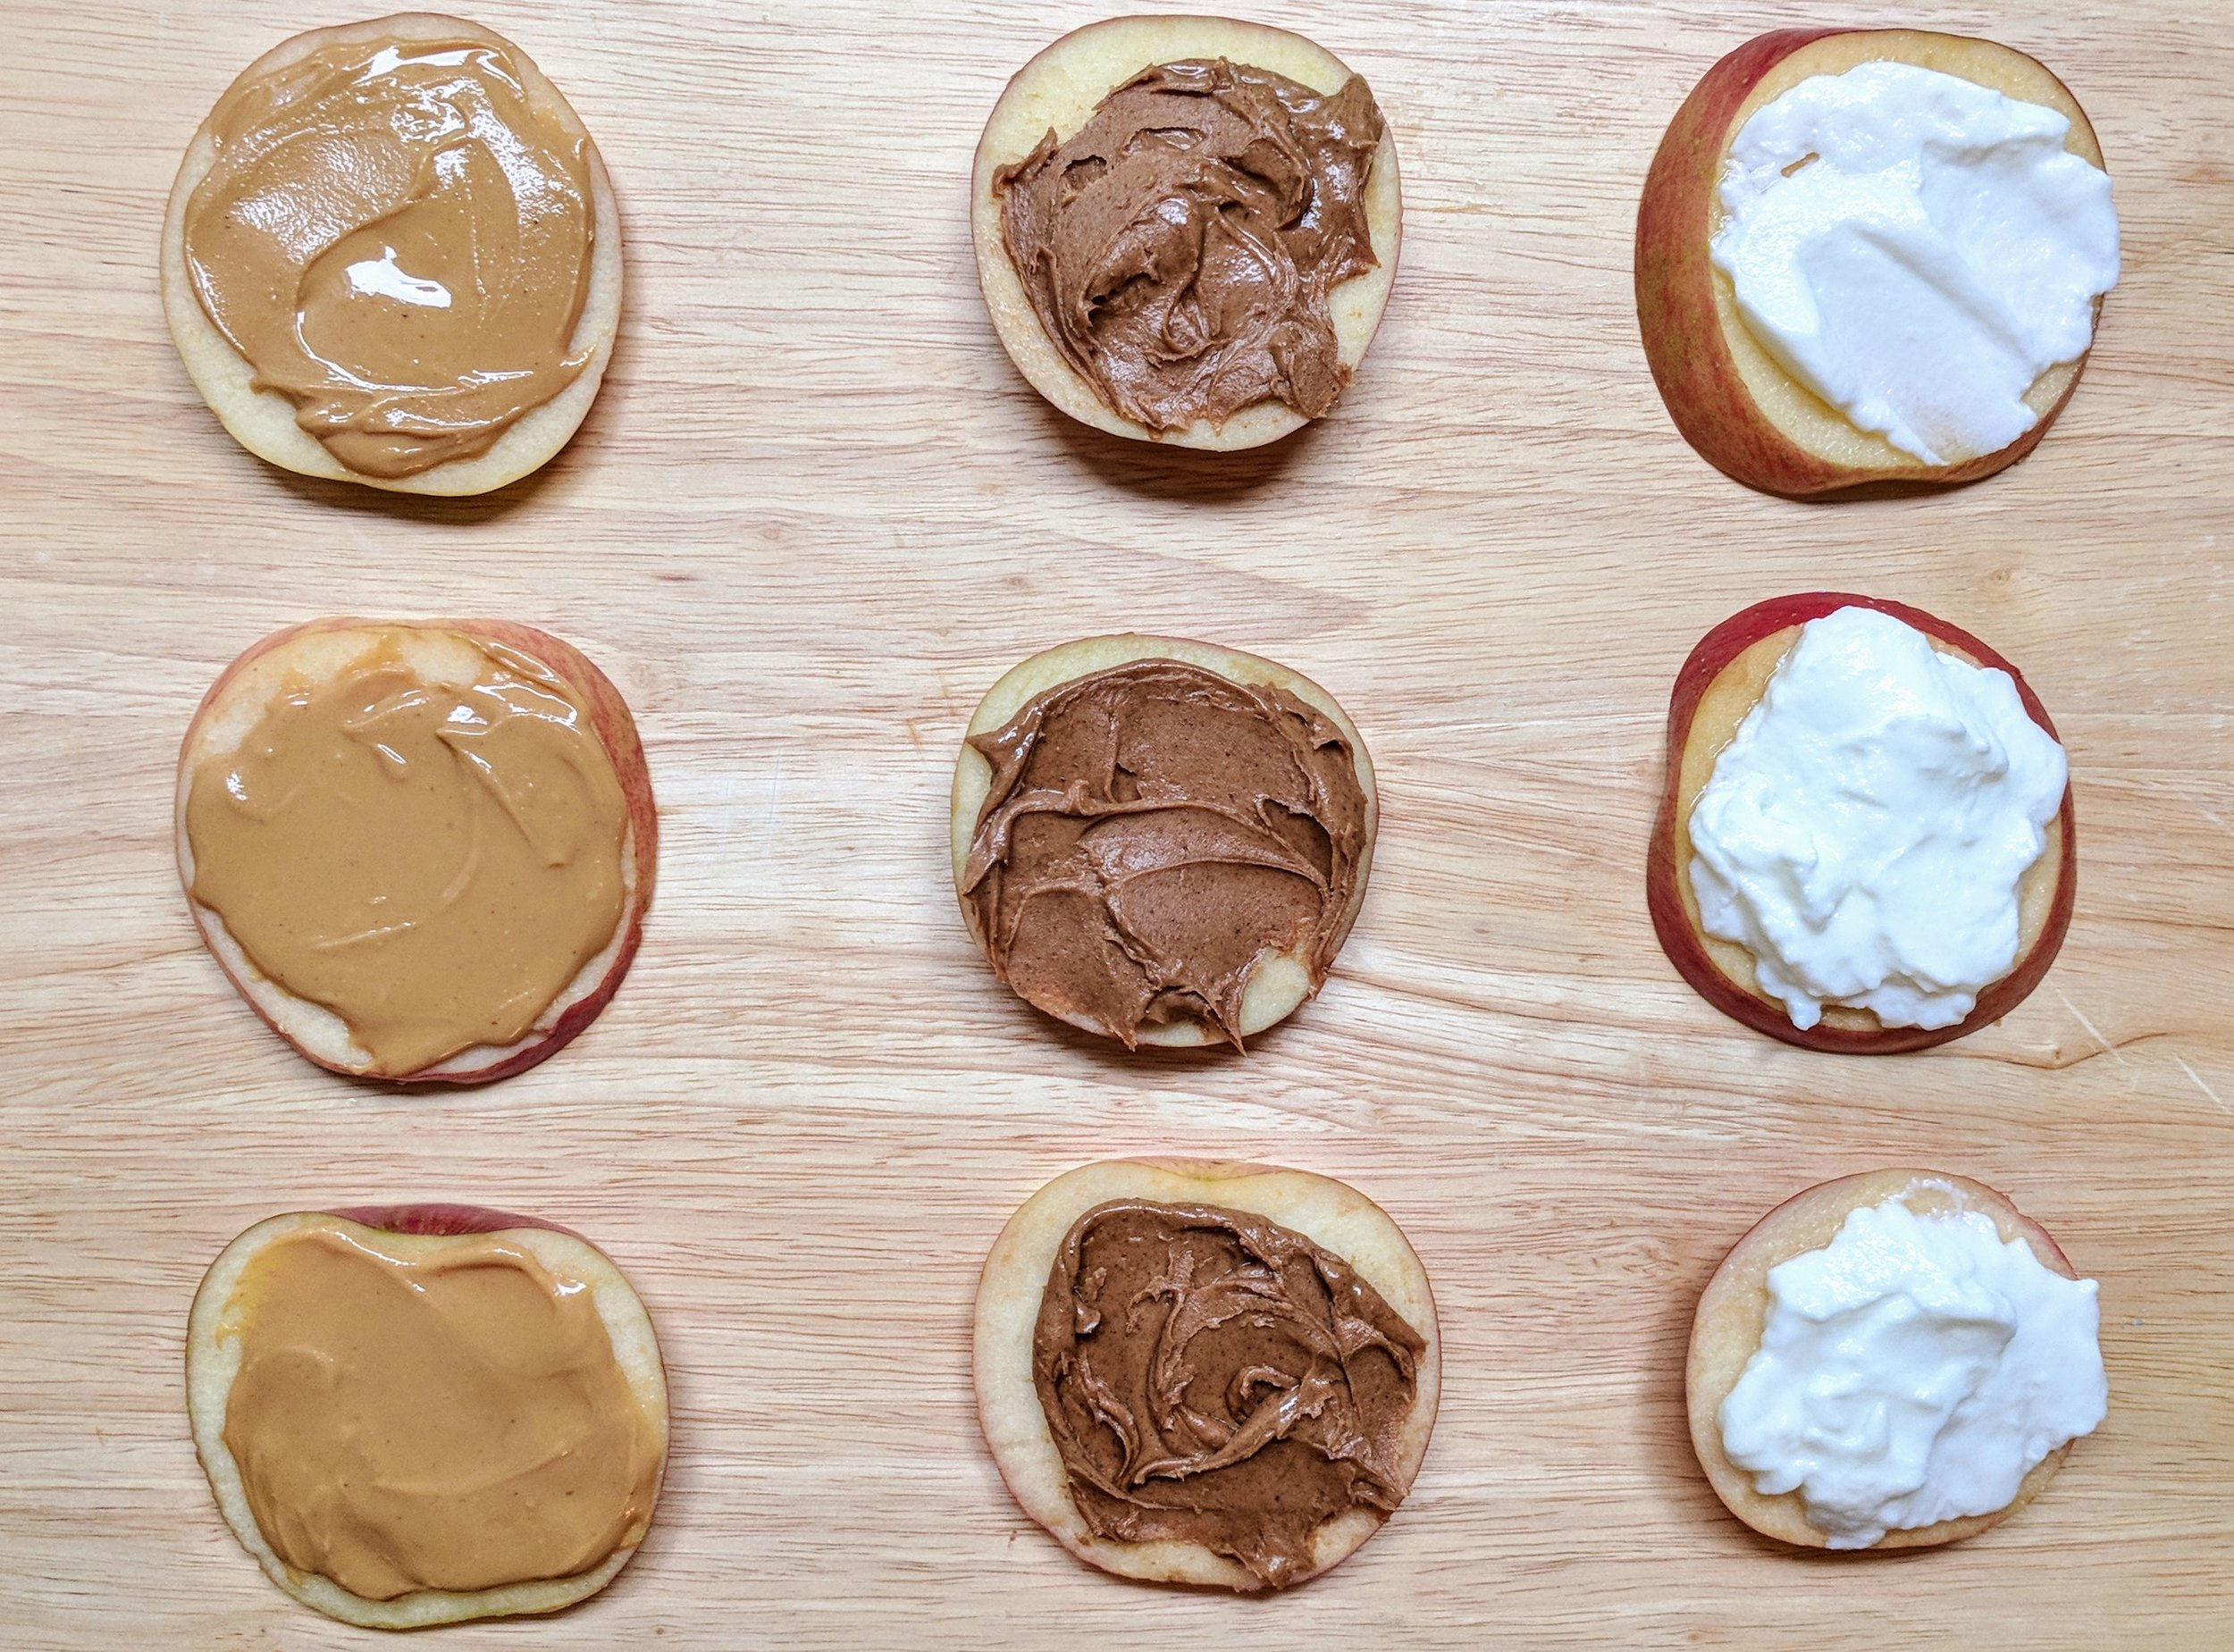 Several of my favorite toppings for apple slices include natural peanut butter, almond butter, and Greek yogurt.